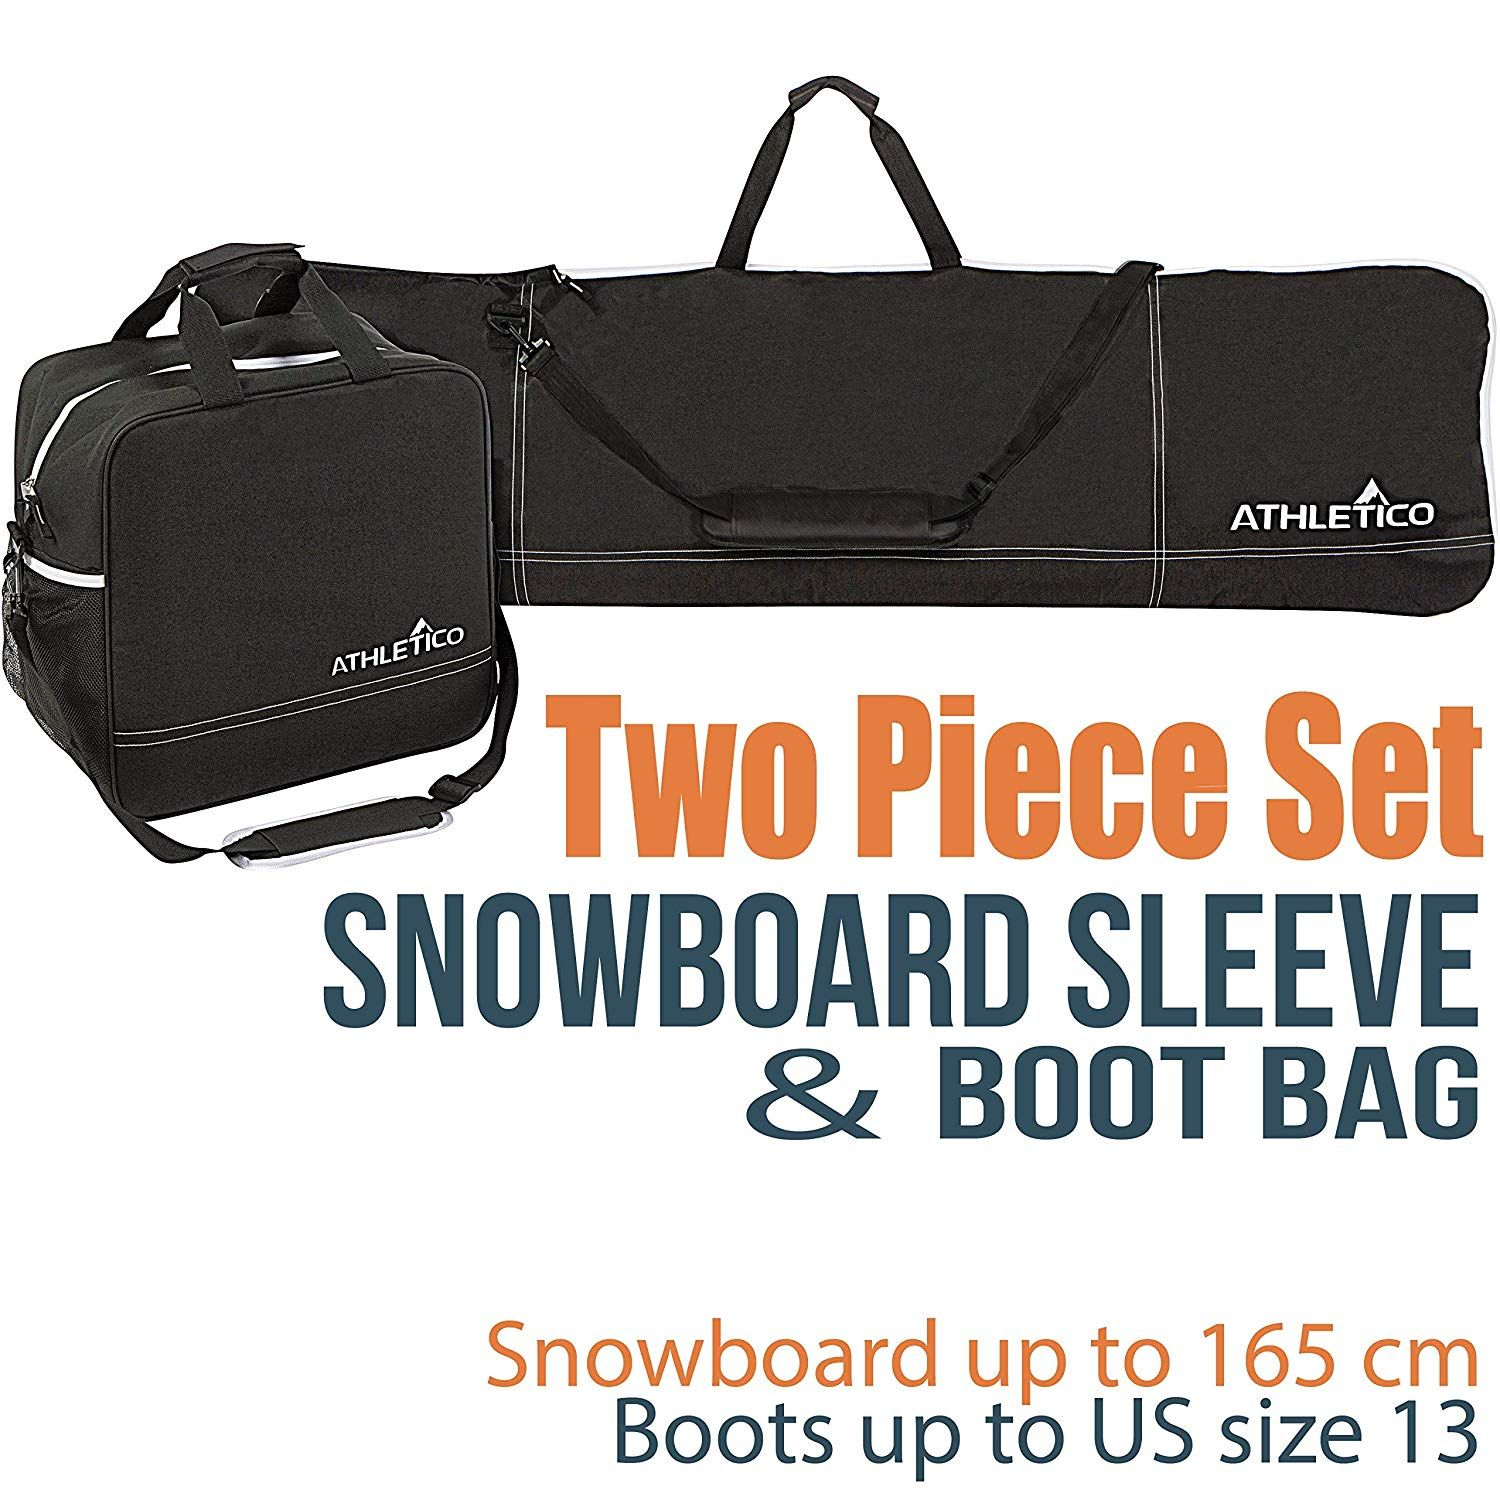 21 Fabulous Gifts For Skiers And Snowboarders In 2020 Snowboard Bag Snowboard Ski Boot Bags